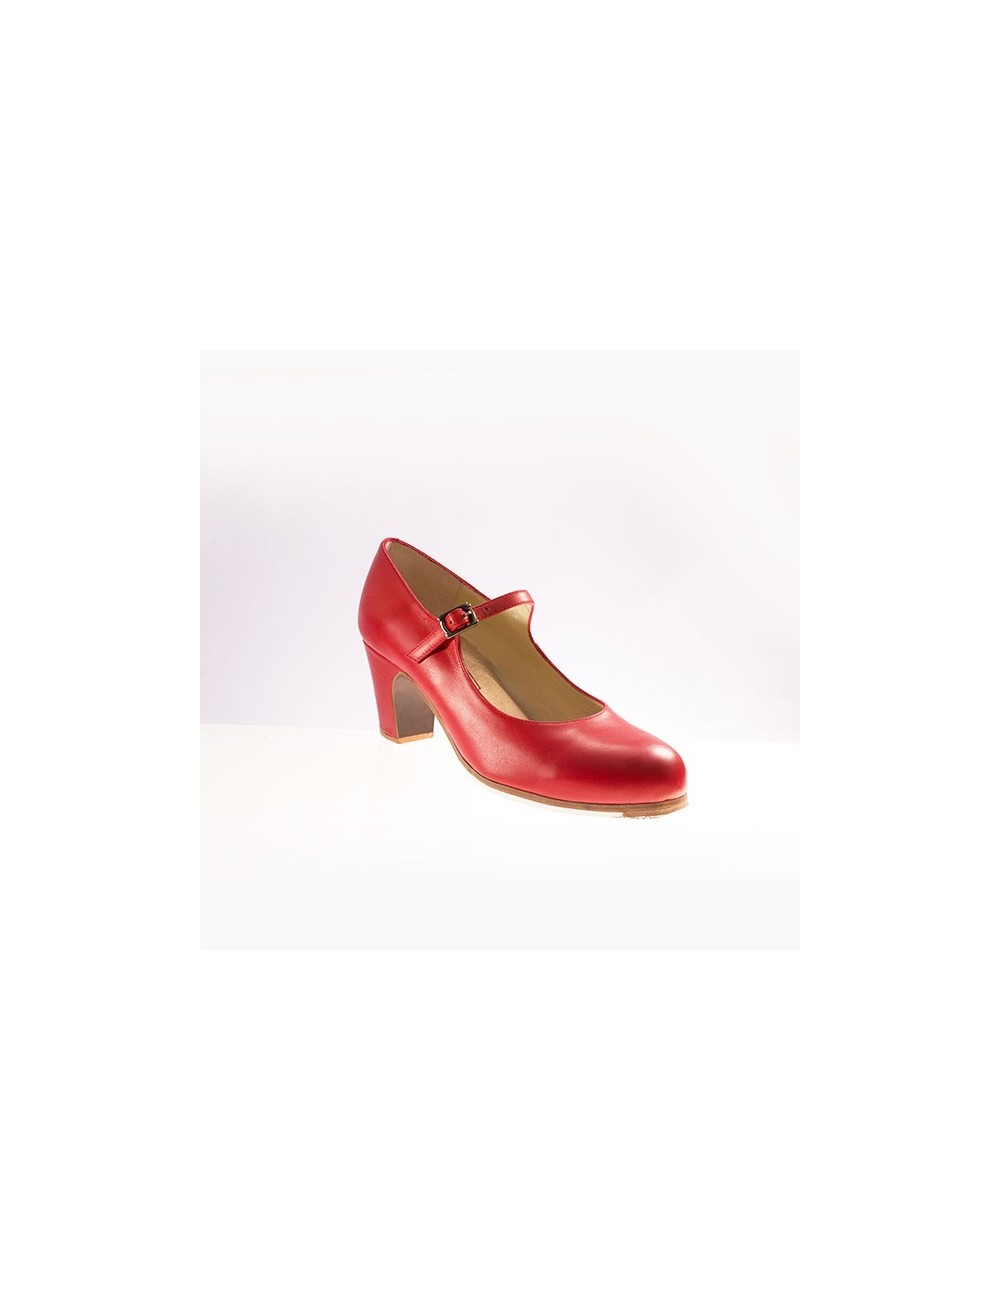 Chaussures Professionnelles MO 1 rouge-3